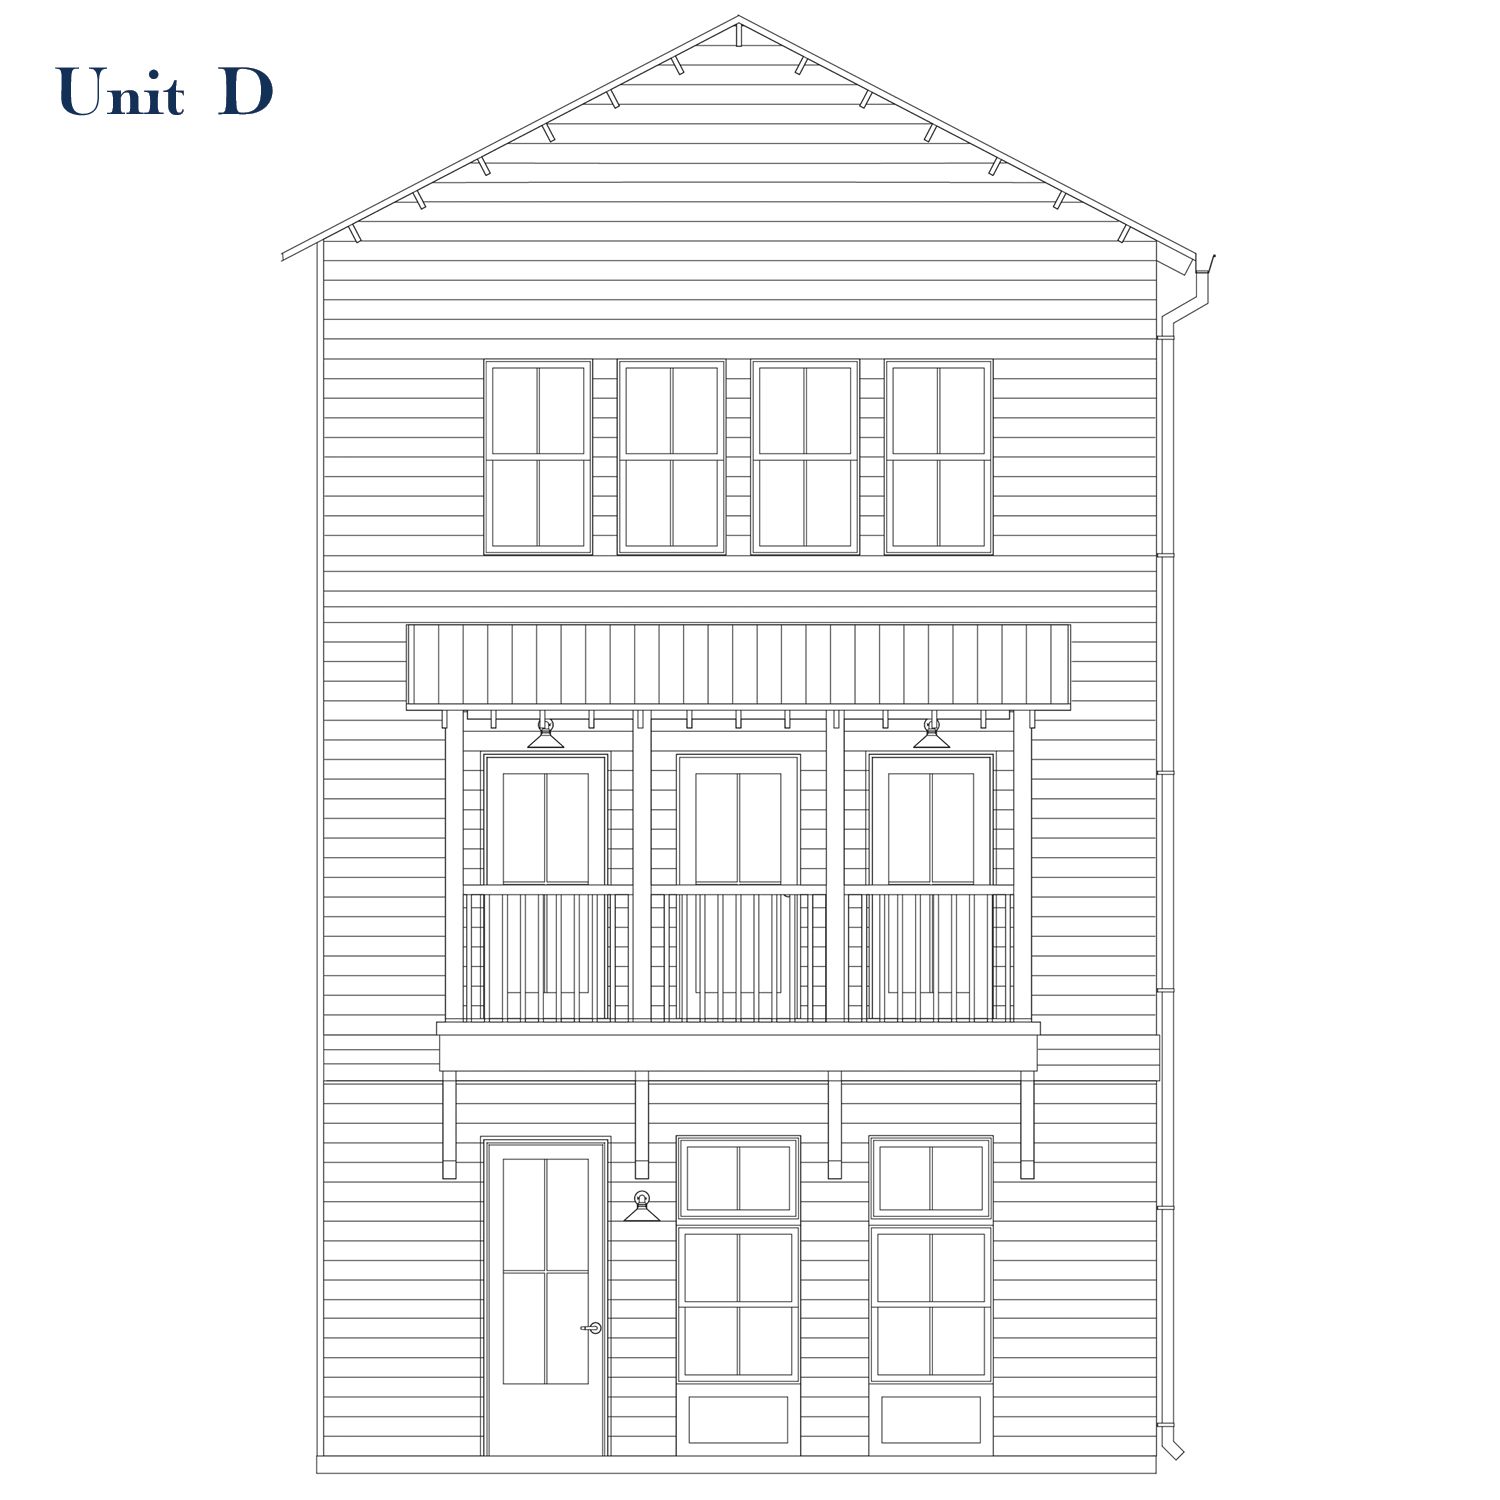 Unit D Front Elevation | East Wilbur LiveWorks, Downtown Lake Mary